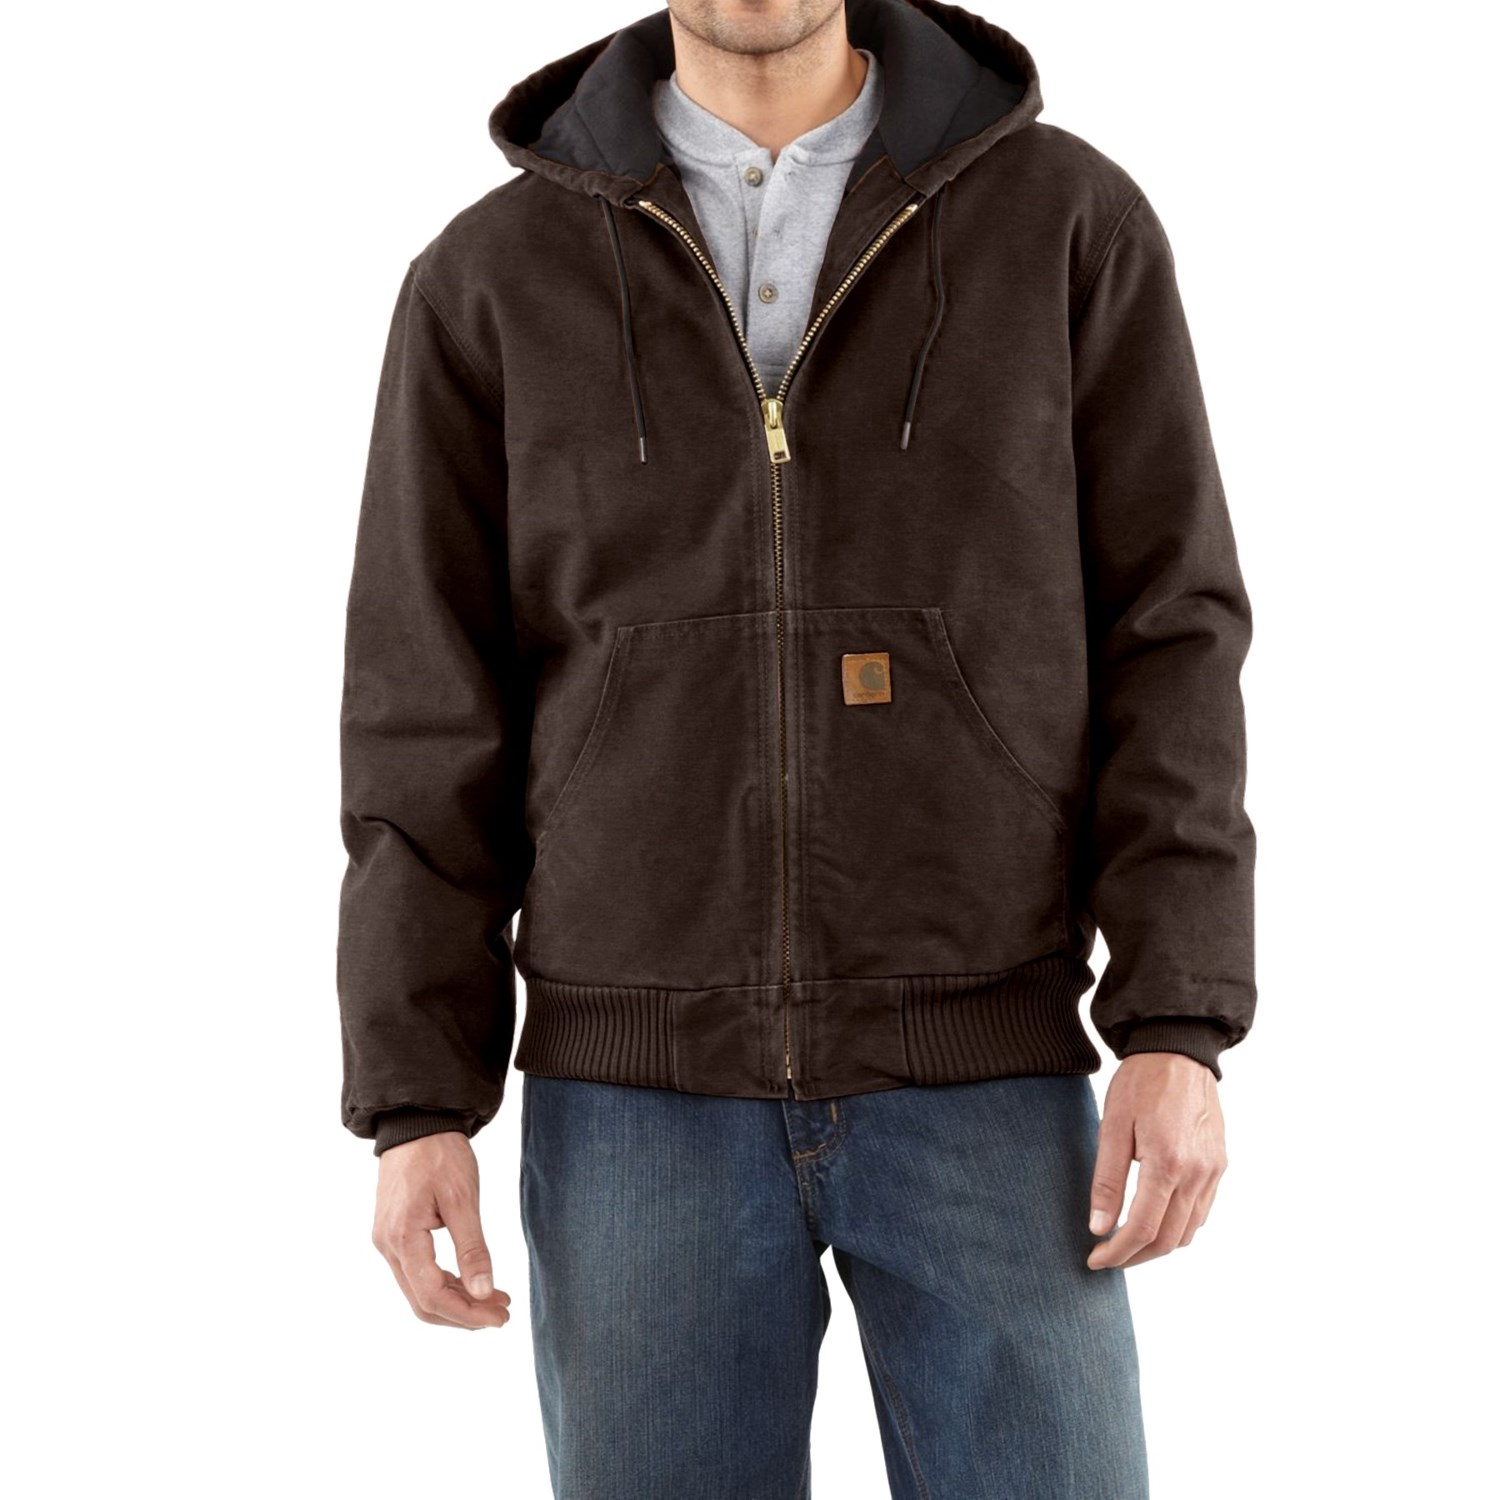 Carhartt Sandstone Active Jacket For Men 40633